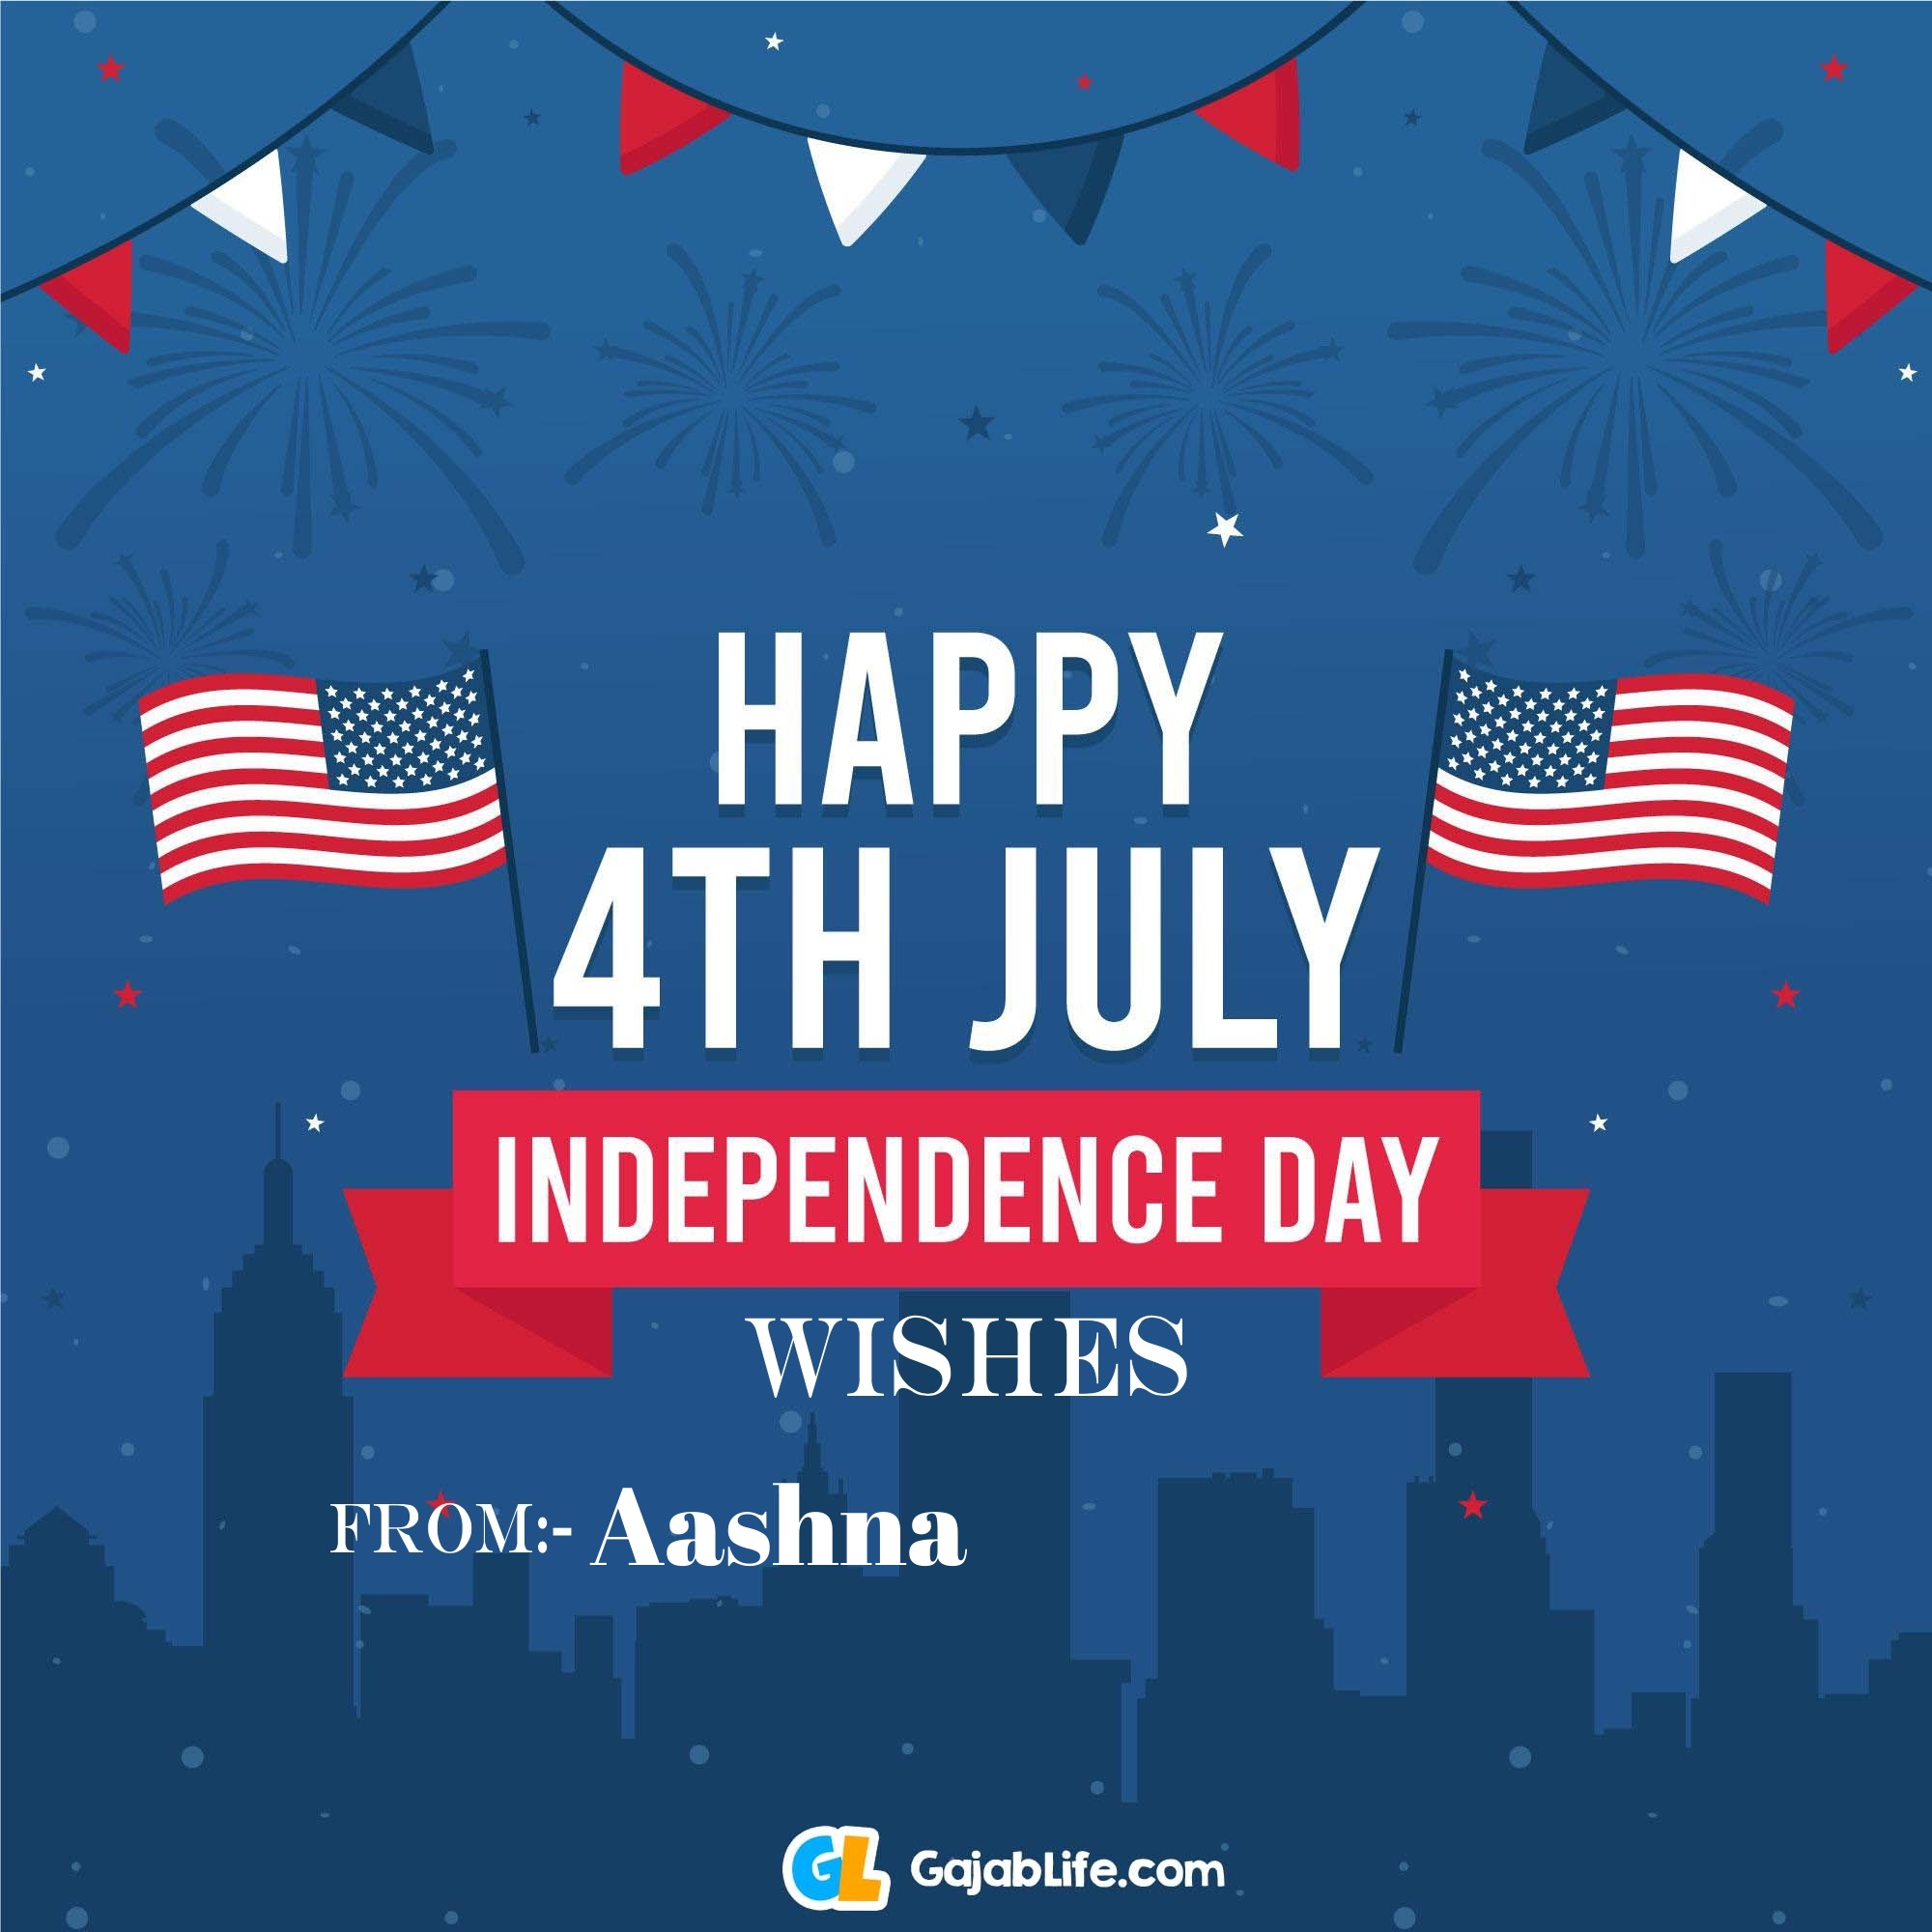 Aashna happy independence day united states of america images